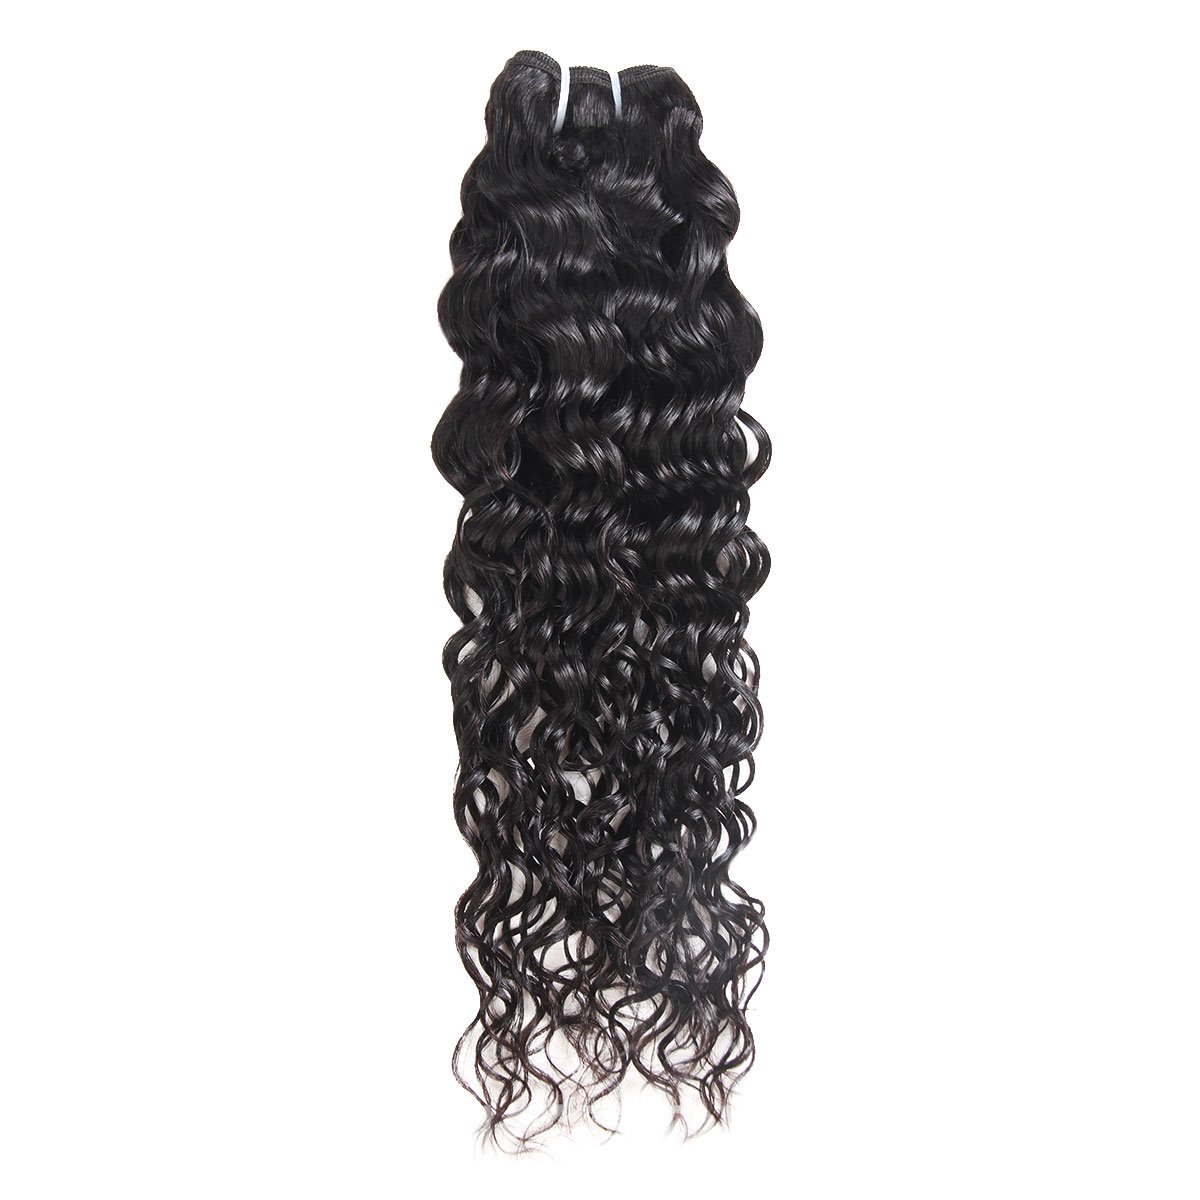 Ericdress Water Wave Hair Bundles Weft Hair 100% Virgin Human Hair Extensions 300g